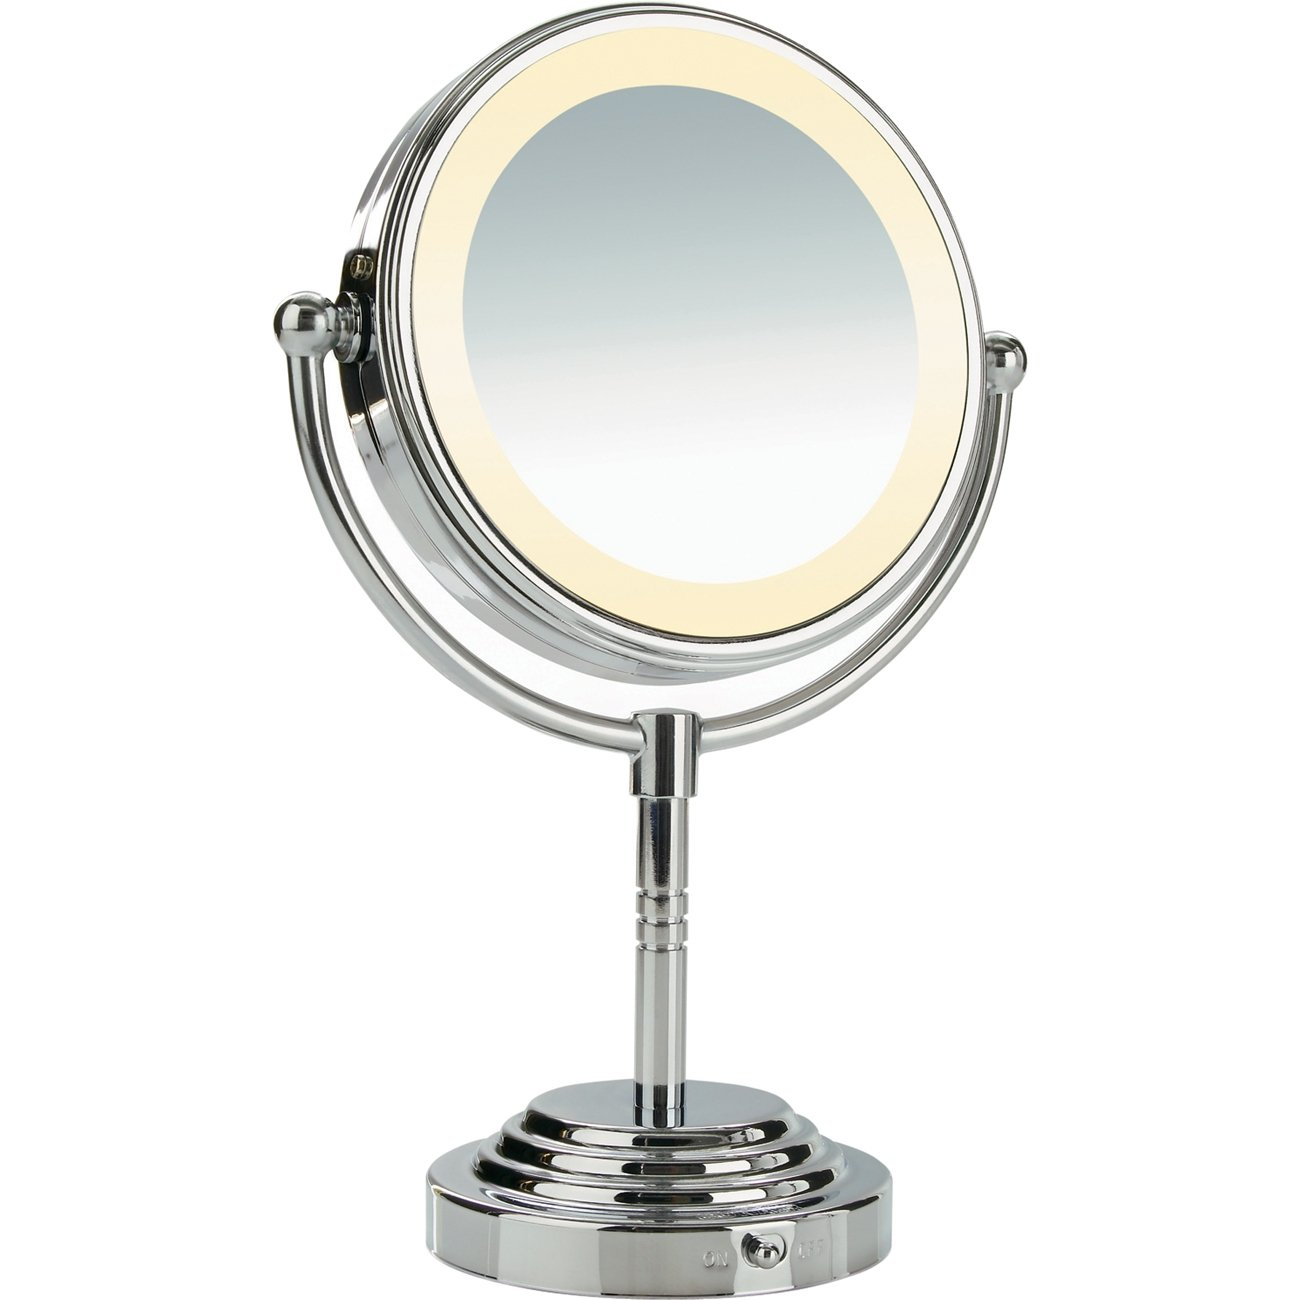 Conair Lighted Vanity Mirror Amazon com Conair Round Shaped Double Sided  Battery  Conair Lighted Vanity. Lighted Makeup Mirror Ulta